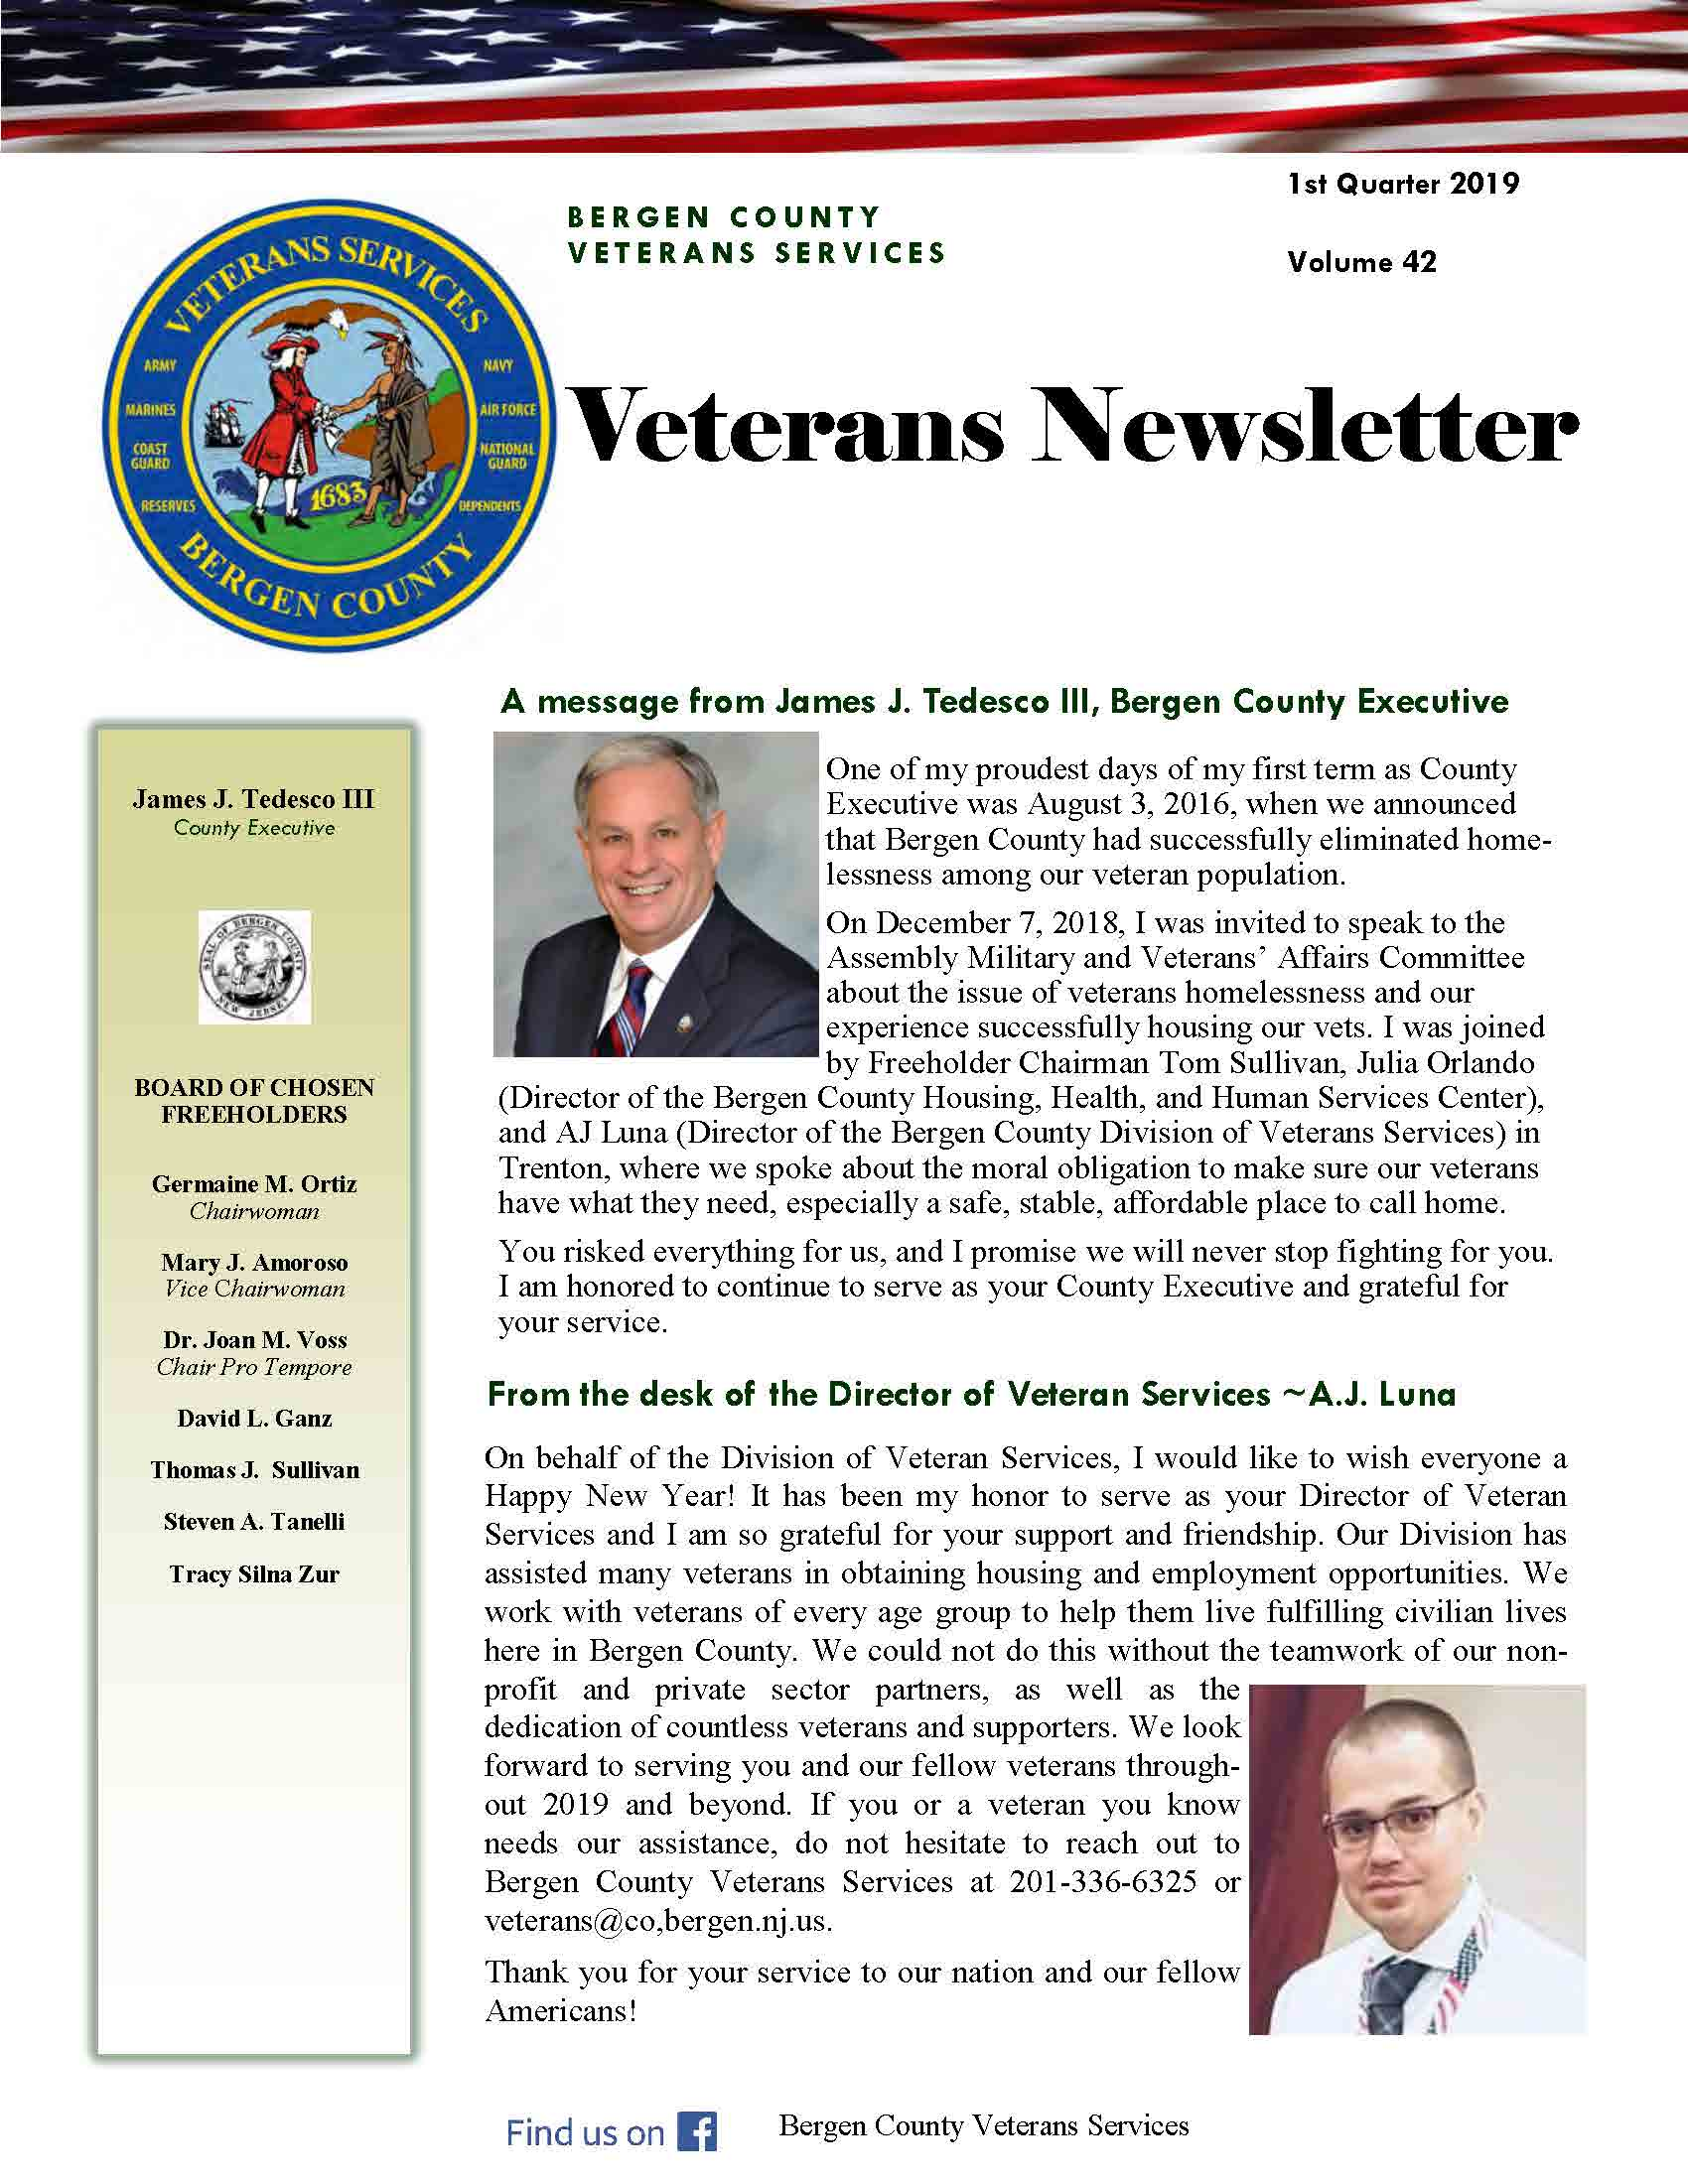 Veterans Newsletter 2019 Qtr 1 thumbnail